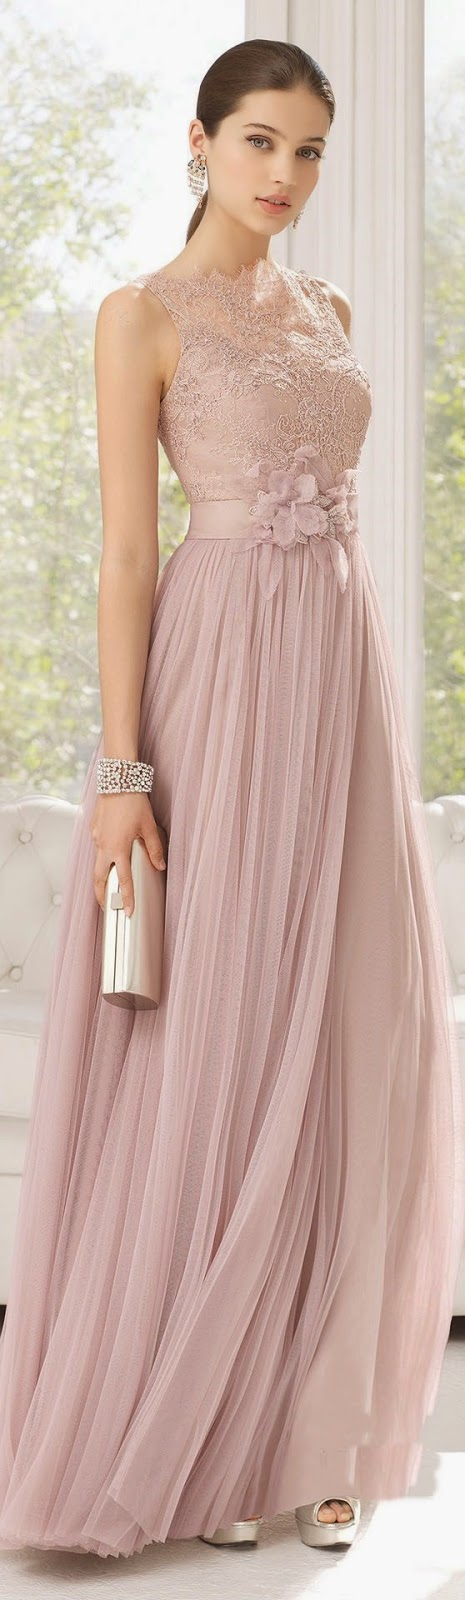 Top 5 Elegant dress